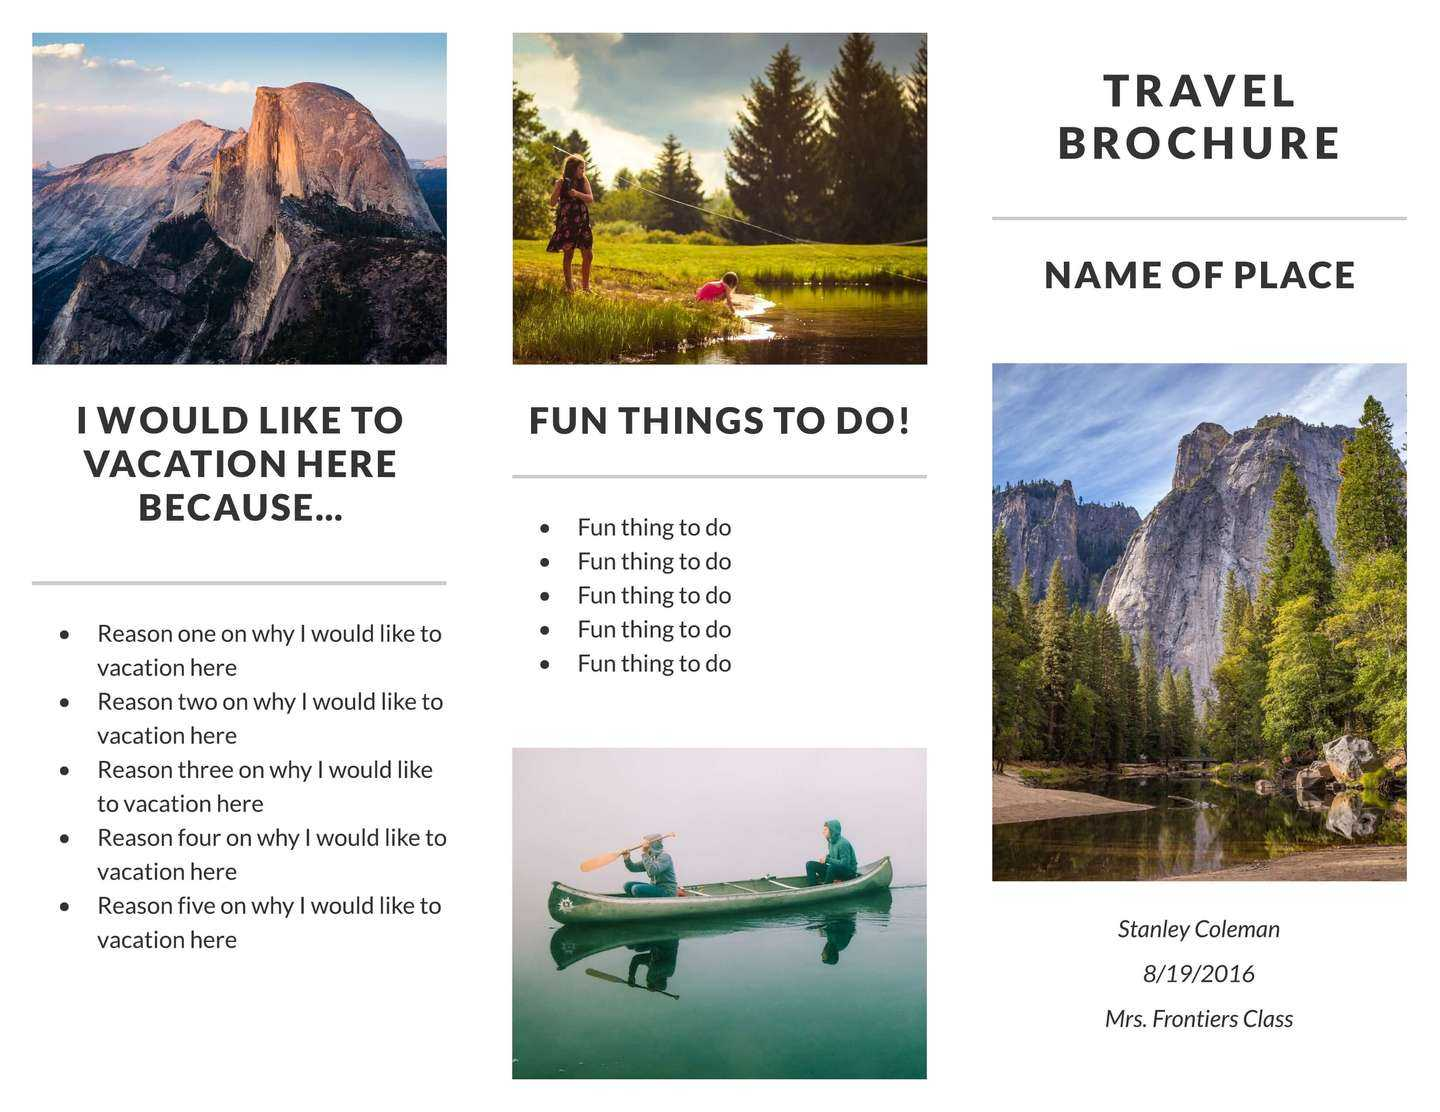 Free Travel Brochure Templates & Examples [8 Free Templates] With Regard To Travel And Tourism Brochure Templates Free